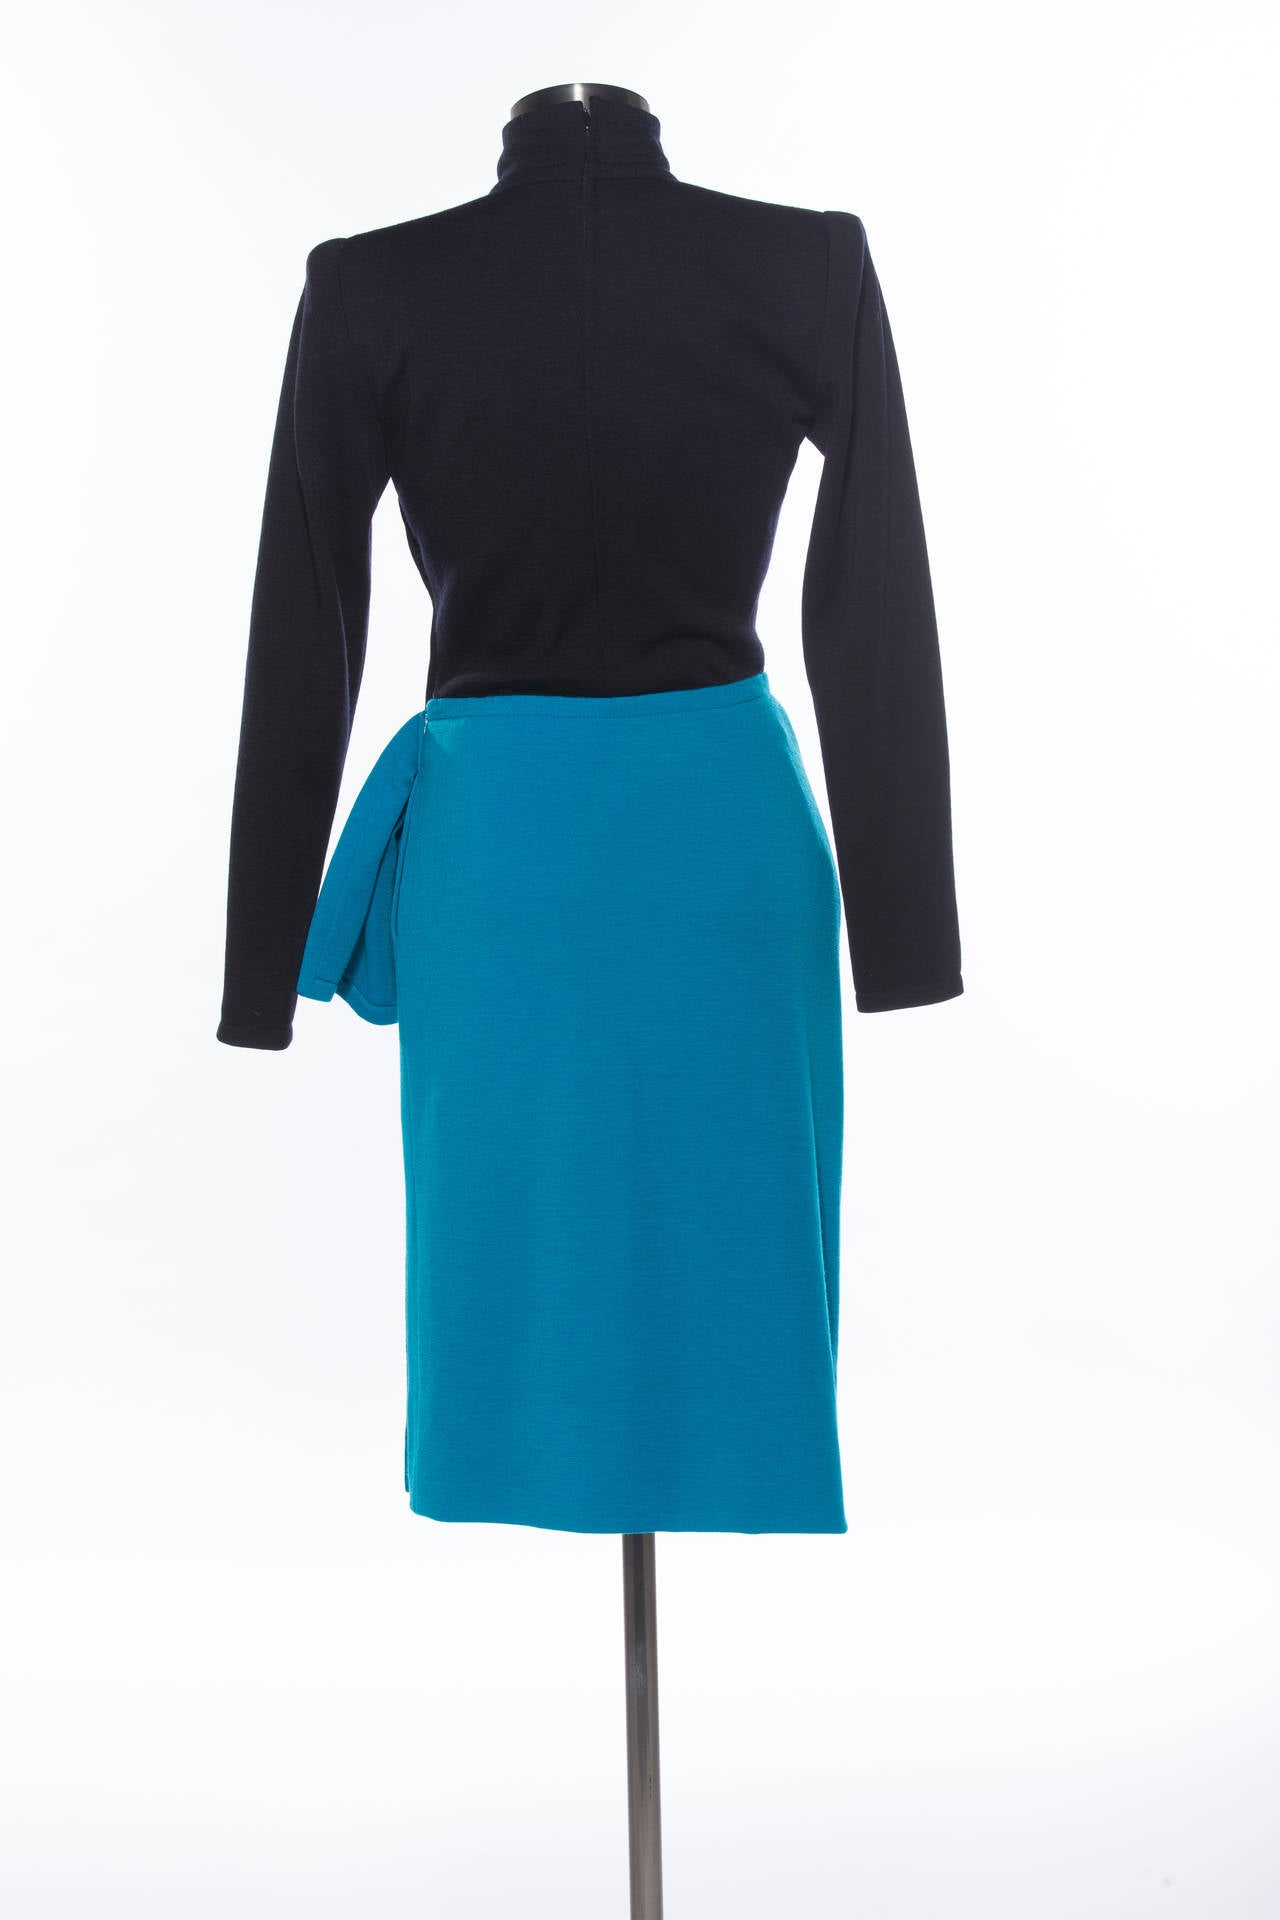 Blue Givenchy By Hubert de Givenchy Wool Jersey Haute Couture Dress, Circa 1980's For Sale